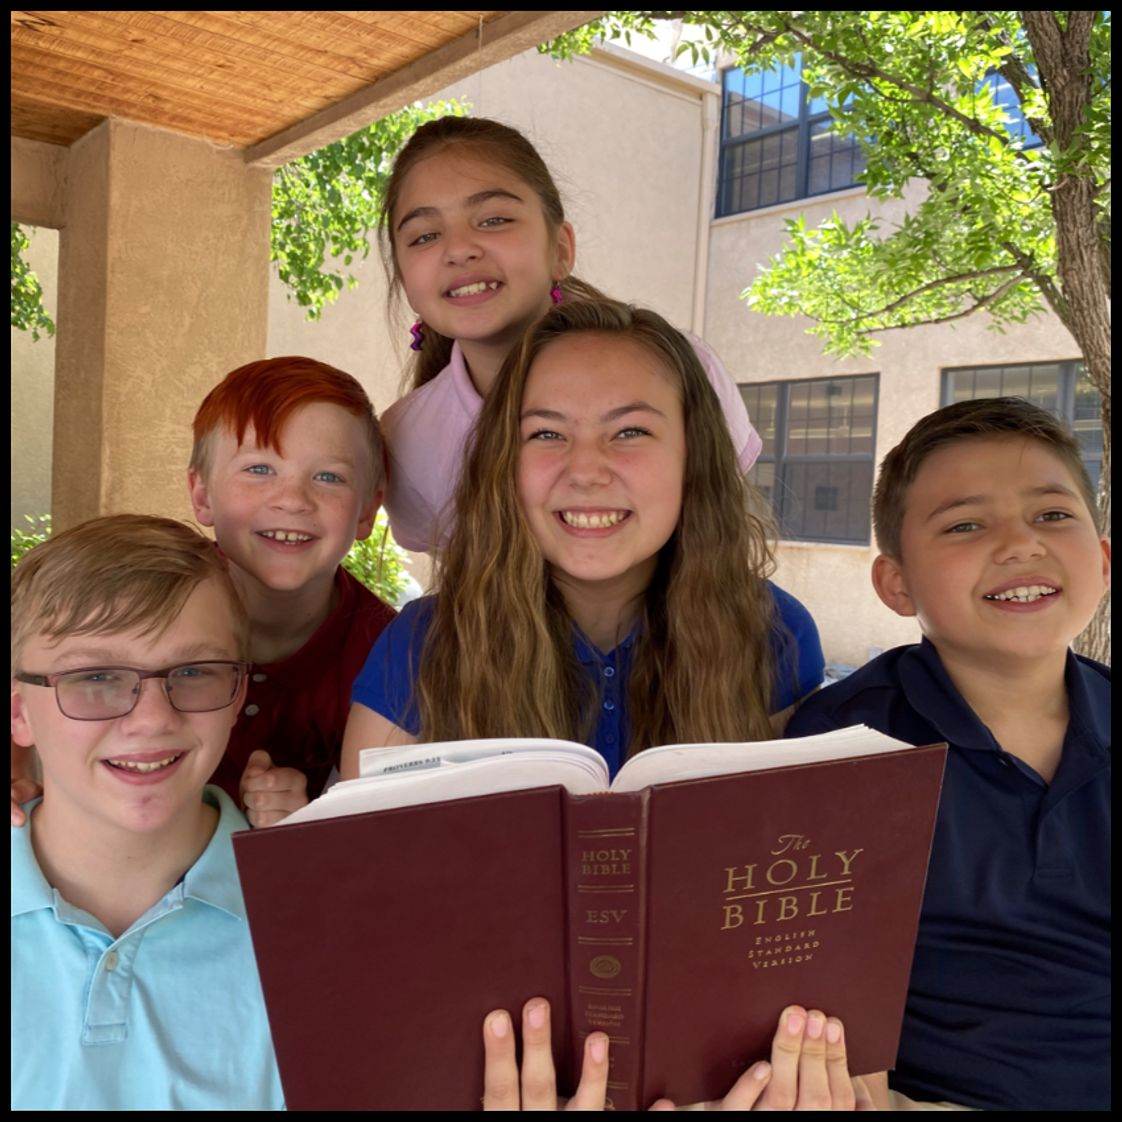 Immanuel Lutheran School Photo - Biblical Worldview taught in every subject. 5 days a week classes start August 19th 2020! Enrollment is open. We can't wait to have you be a part of our Christian family! Schedule your Educational Success Consultation today!